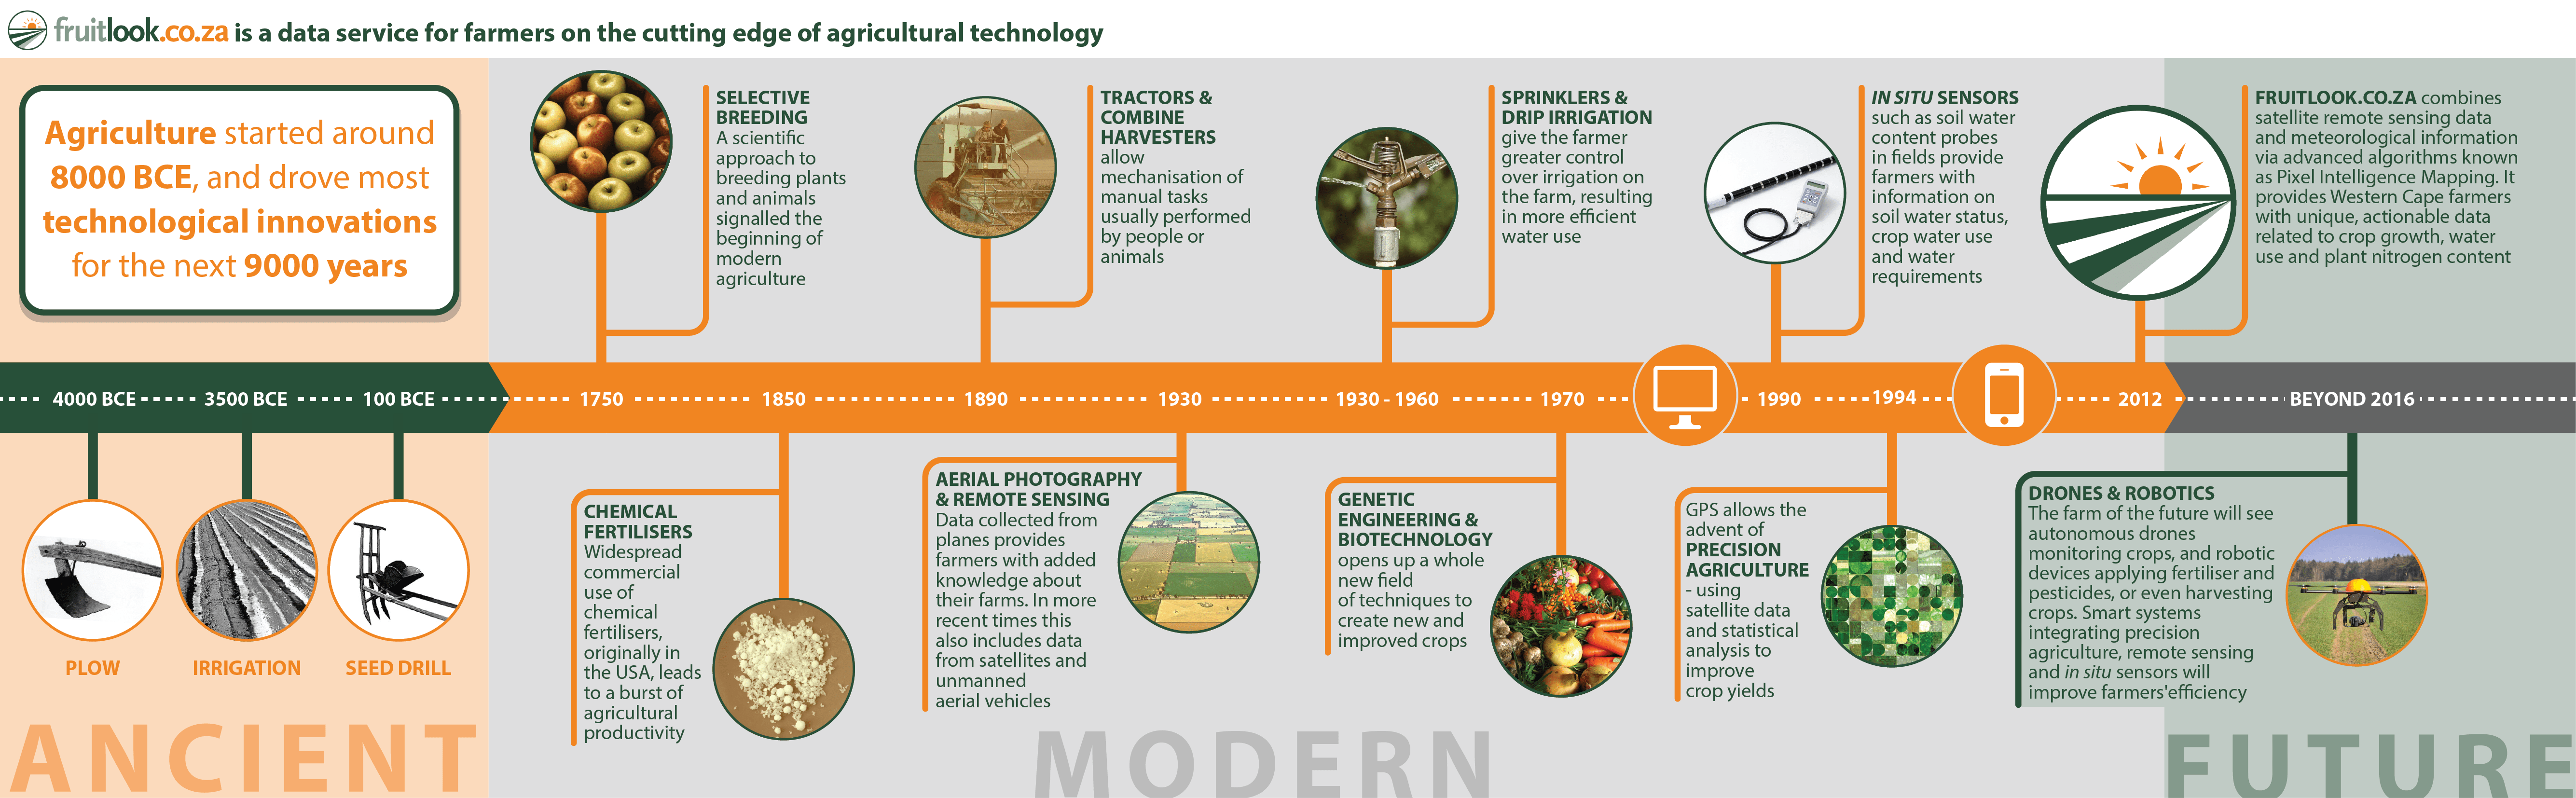 new-look-at-fruit-industry-part-2-infographic